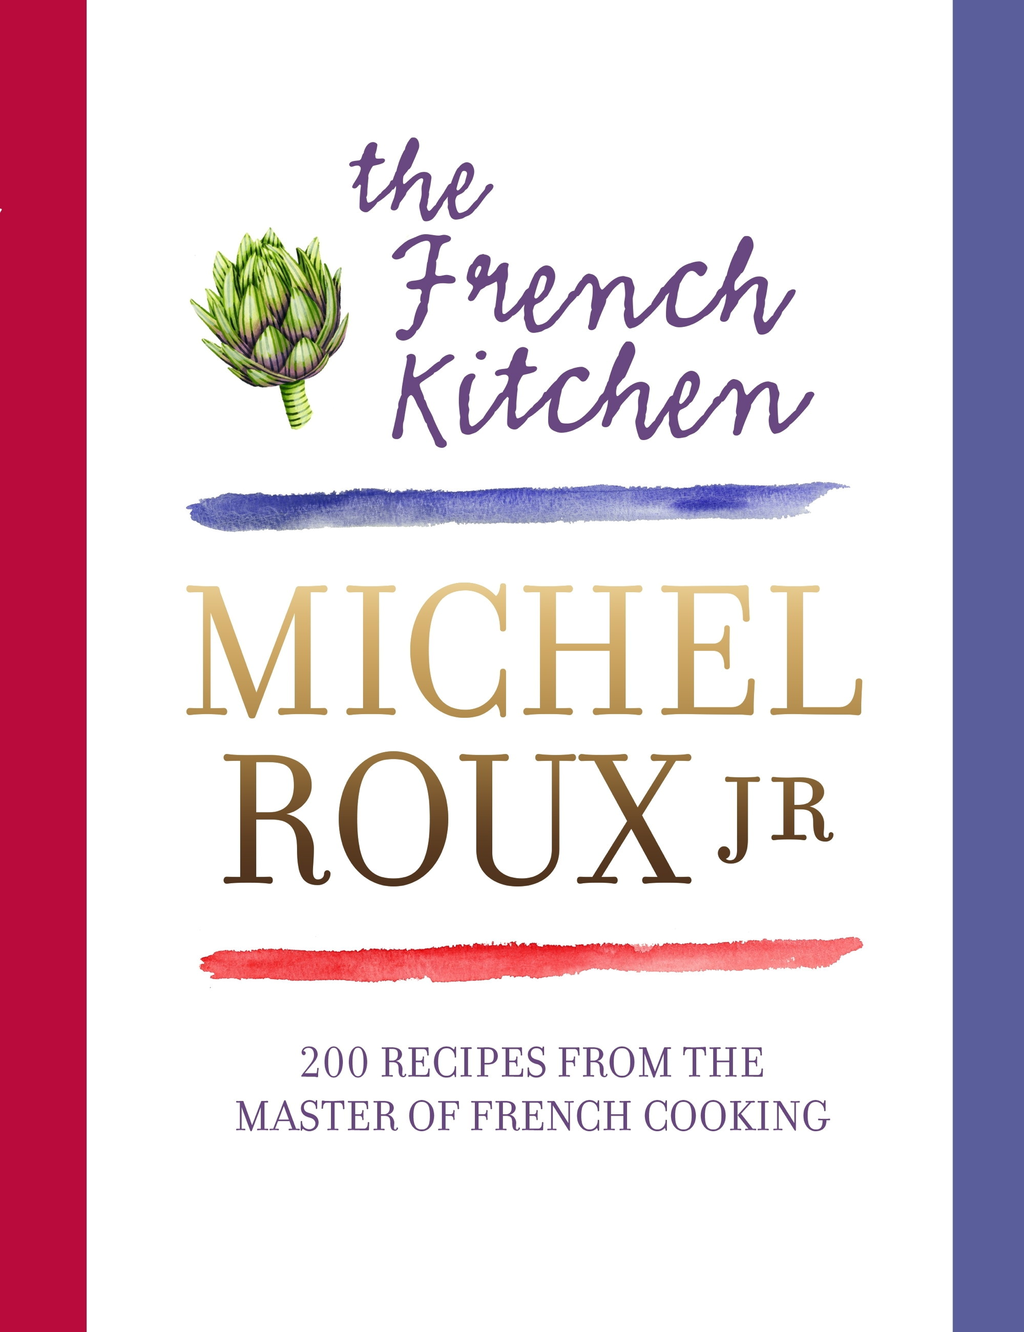 The French Kitchen 200 Recipes From the Master of French Cooking